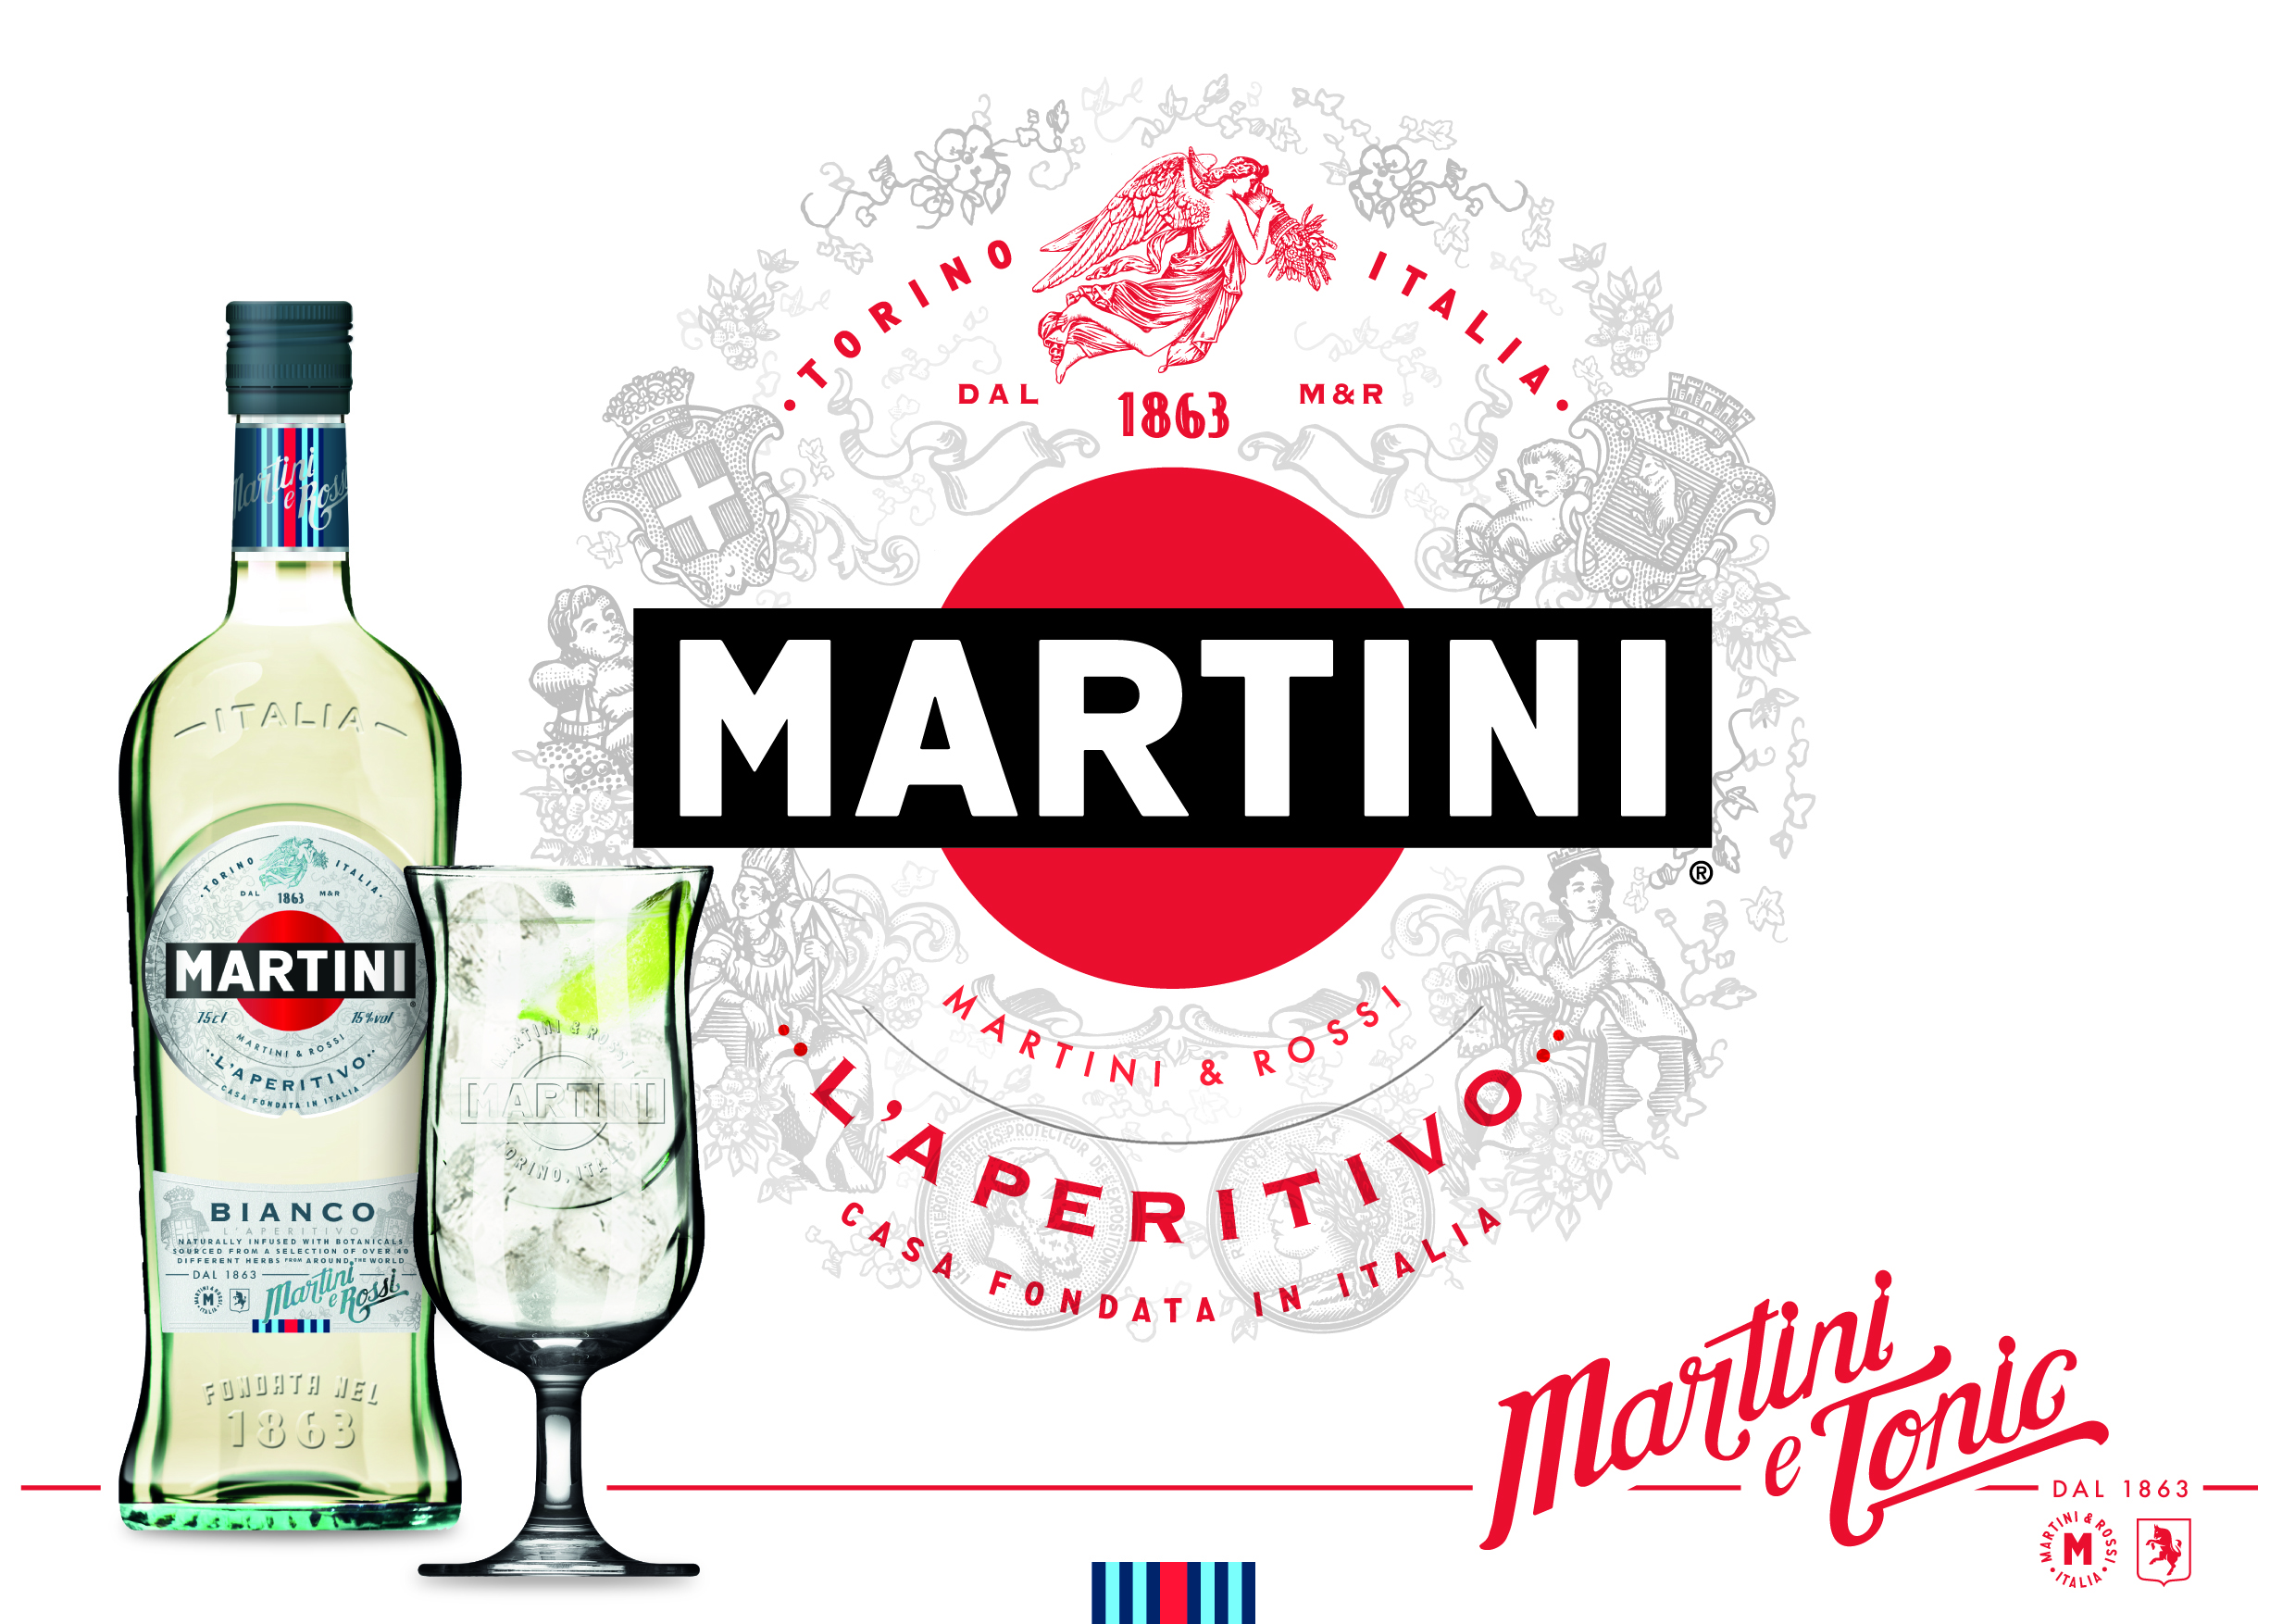 MA TERRAZZA MARTINI PARIS